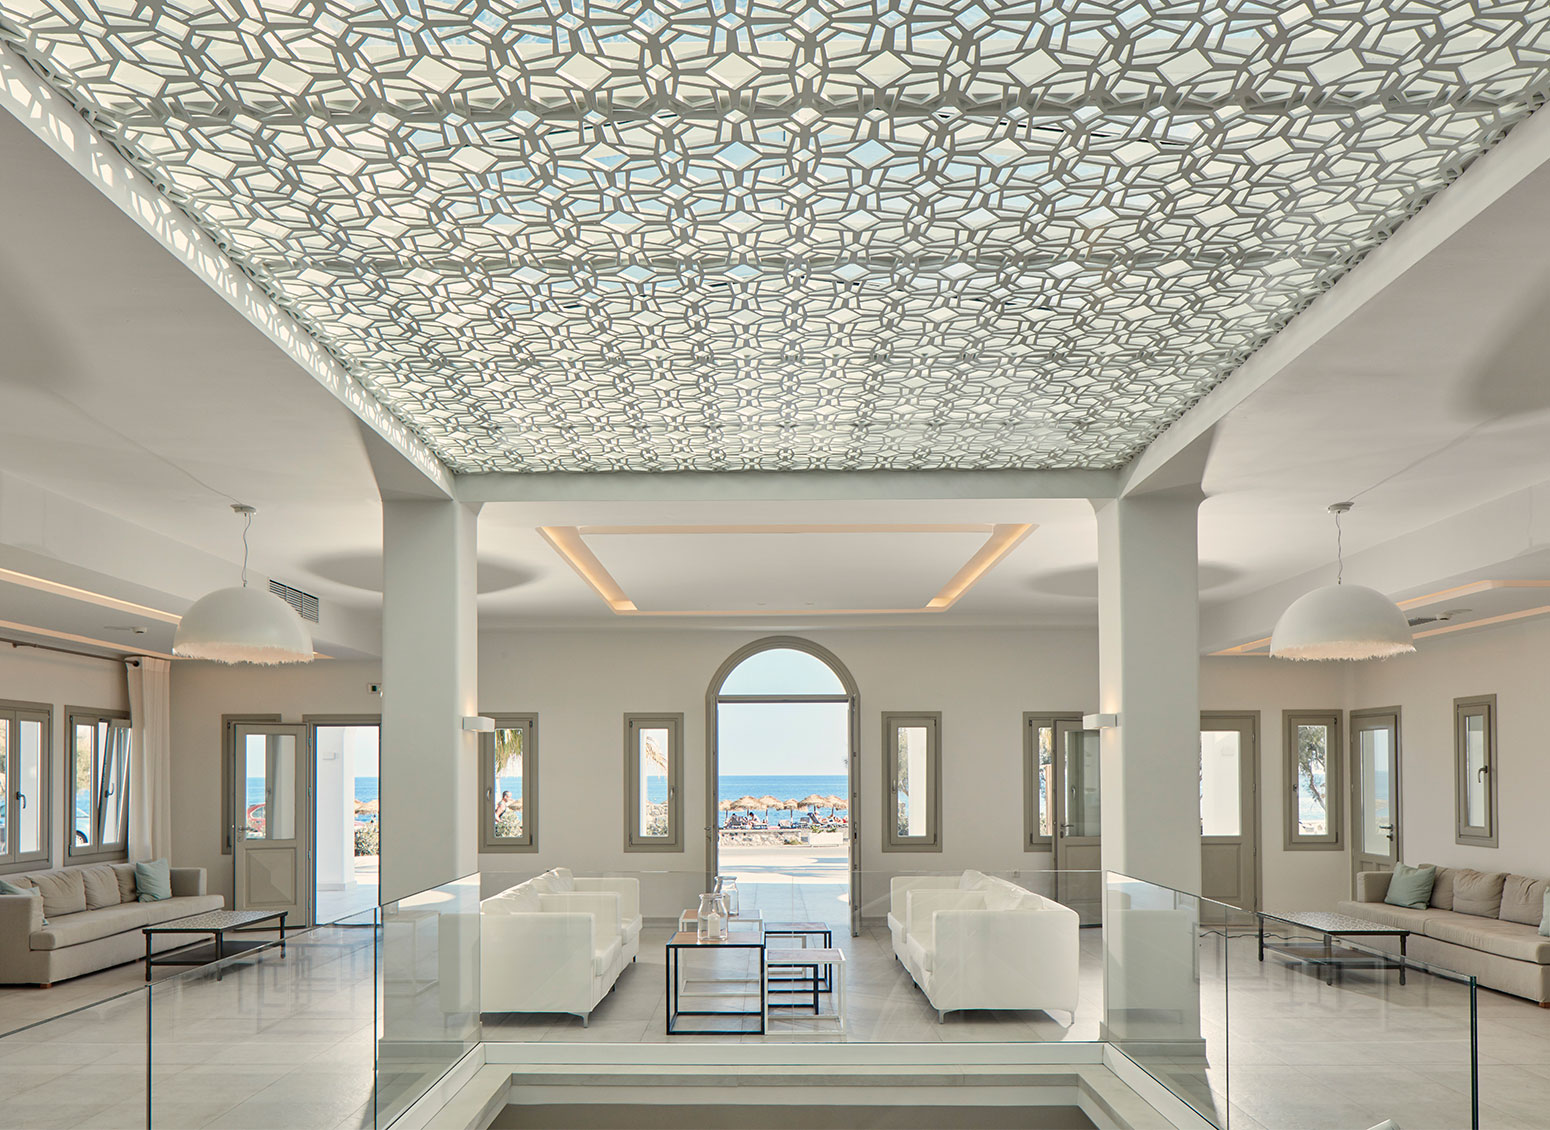 Contract lighting for hotels and accommodation facilities: Karman lamps